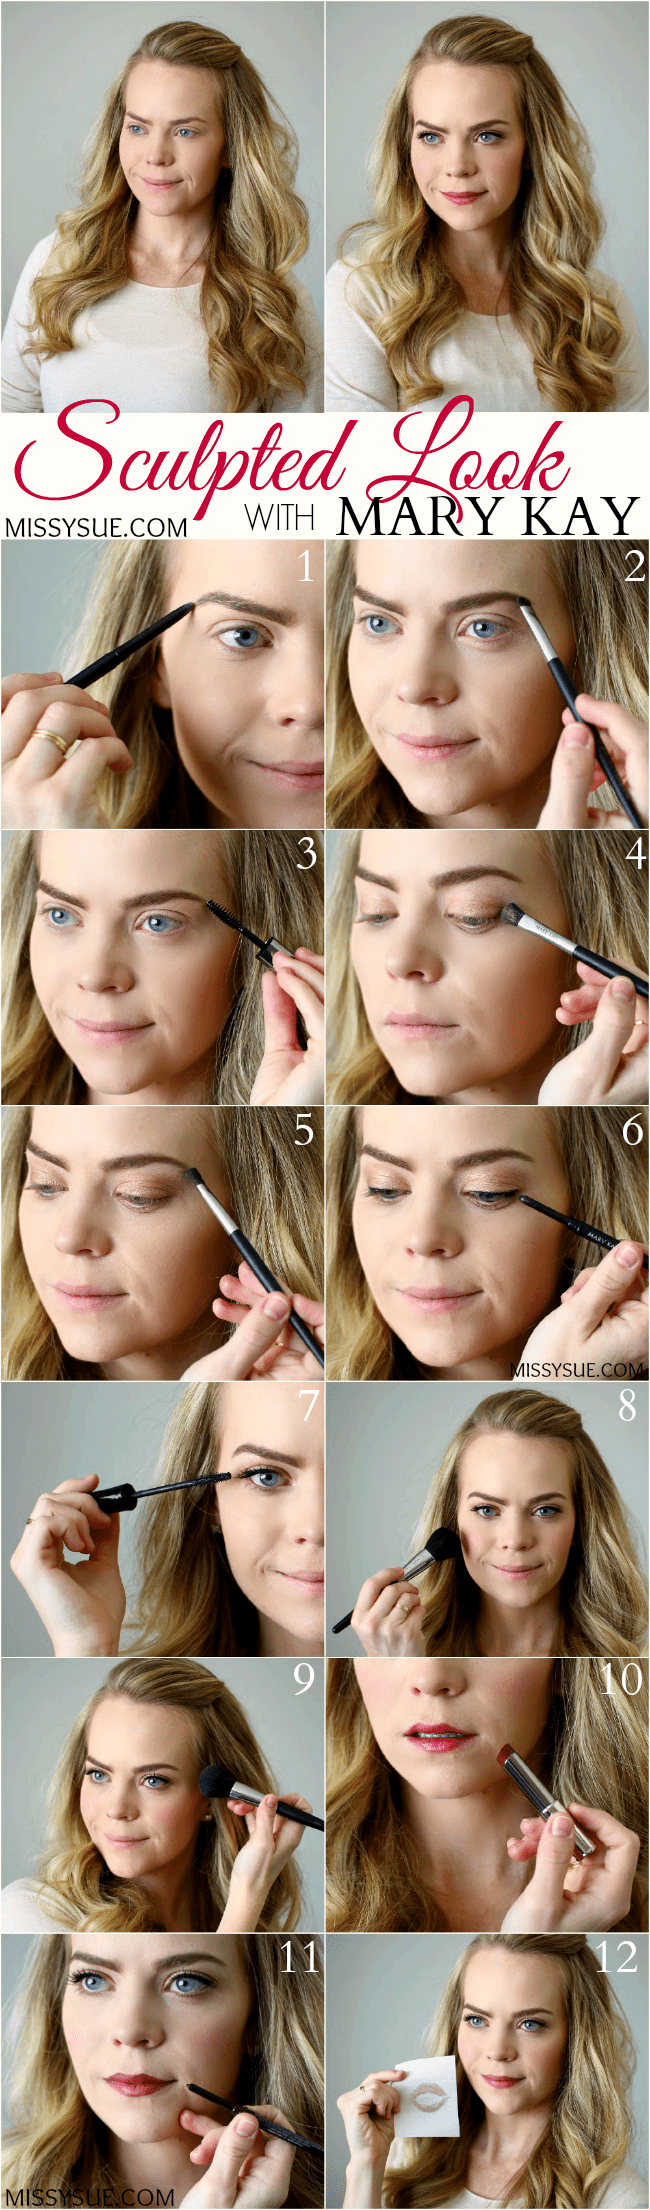 mary-kay-bold-brow-sculpted-look